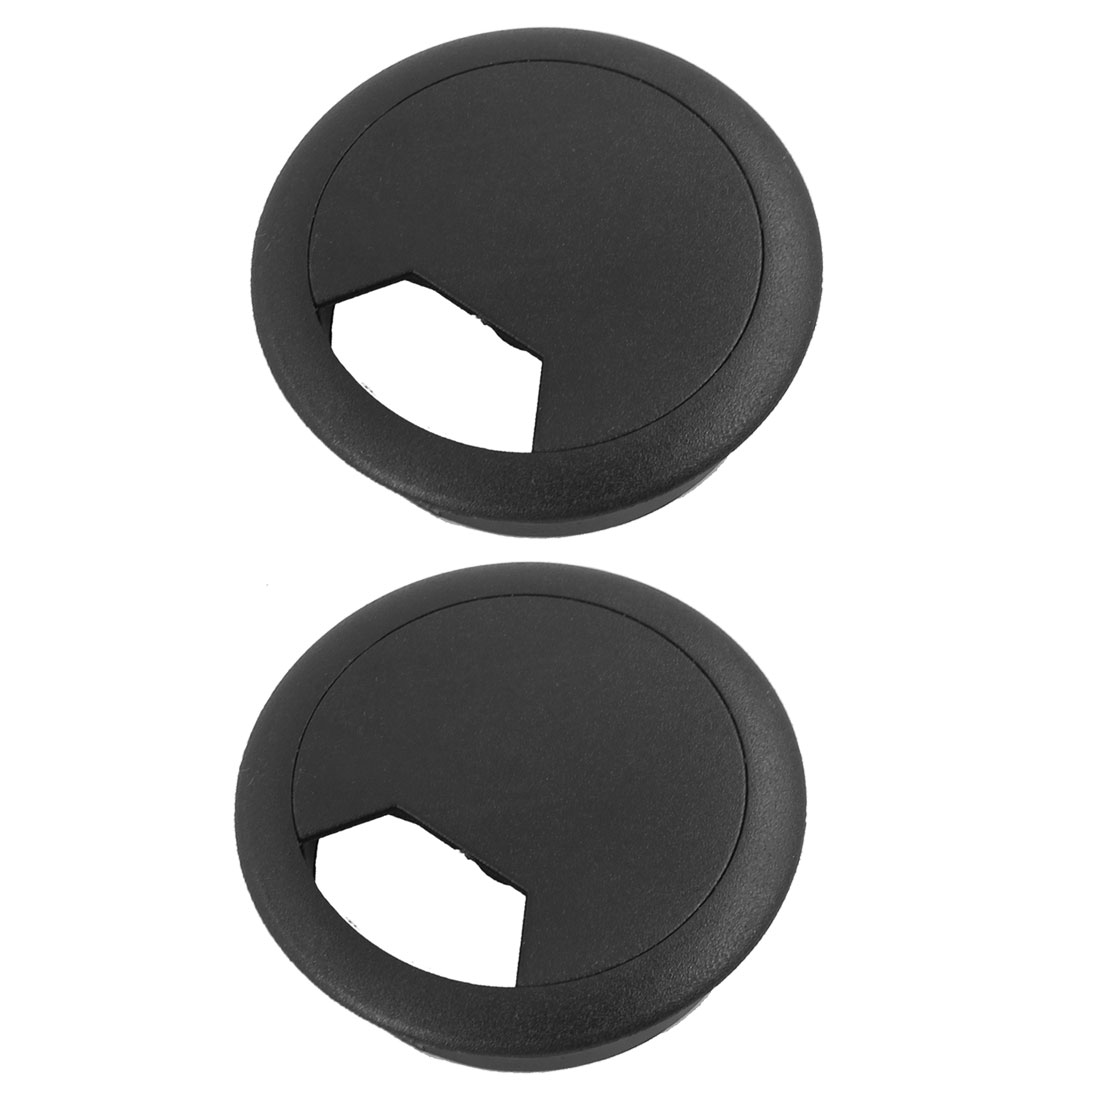 Computer Desk Plastic Grommets Wire Cord Cable Hole Cover Black 50mm Diameter 2 Pcs